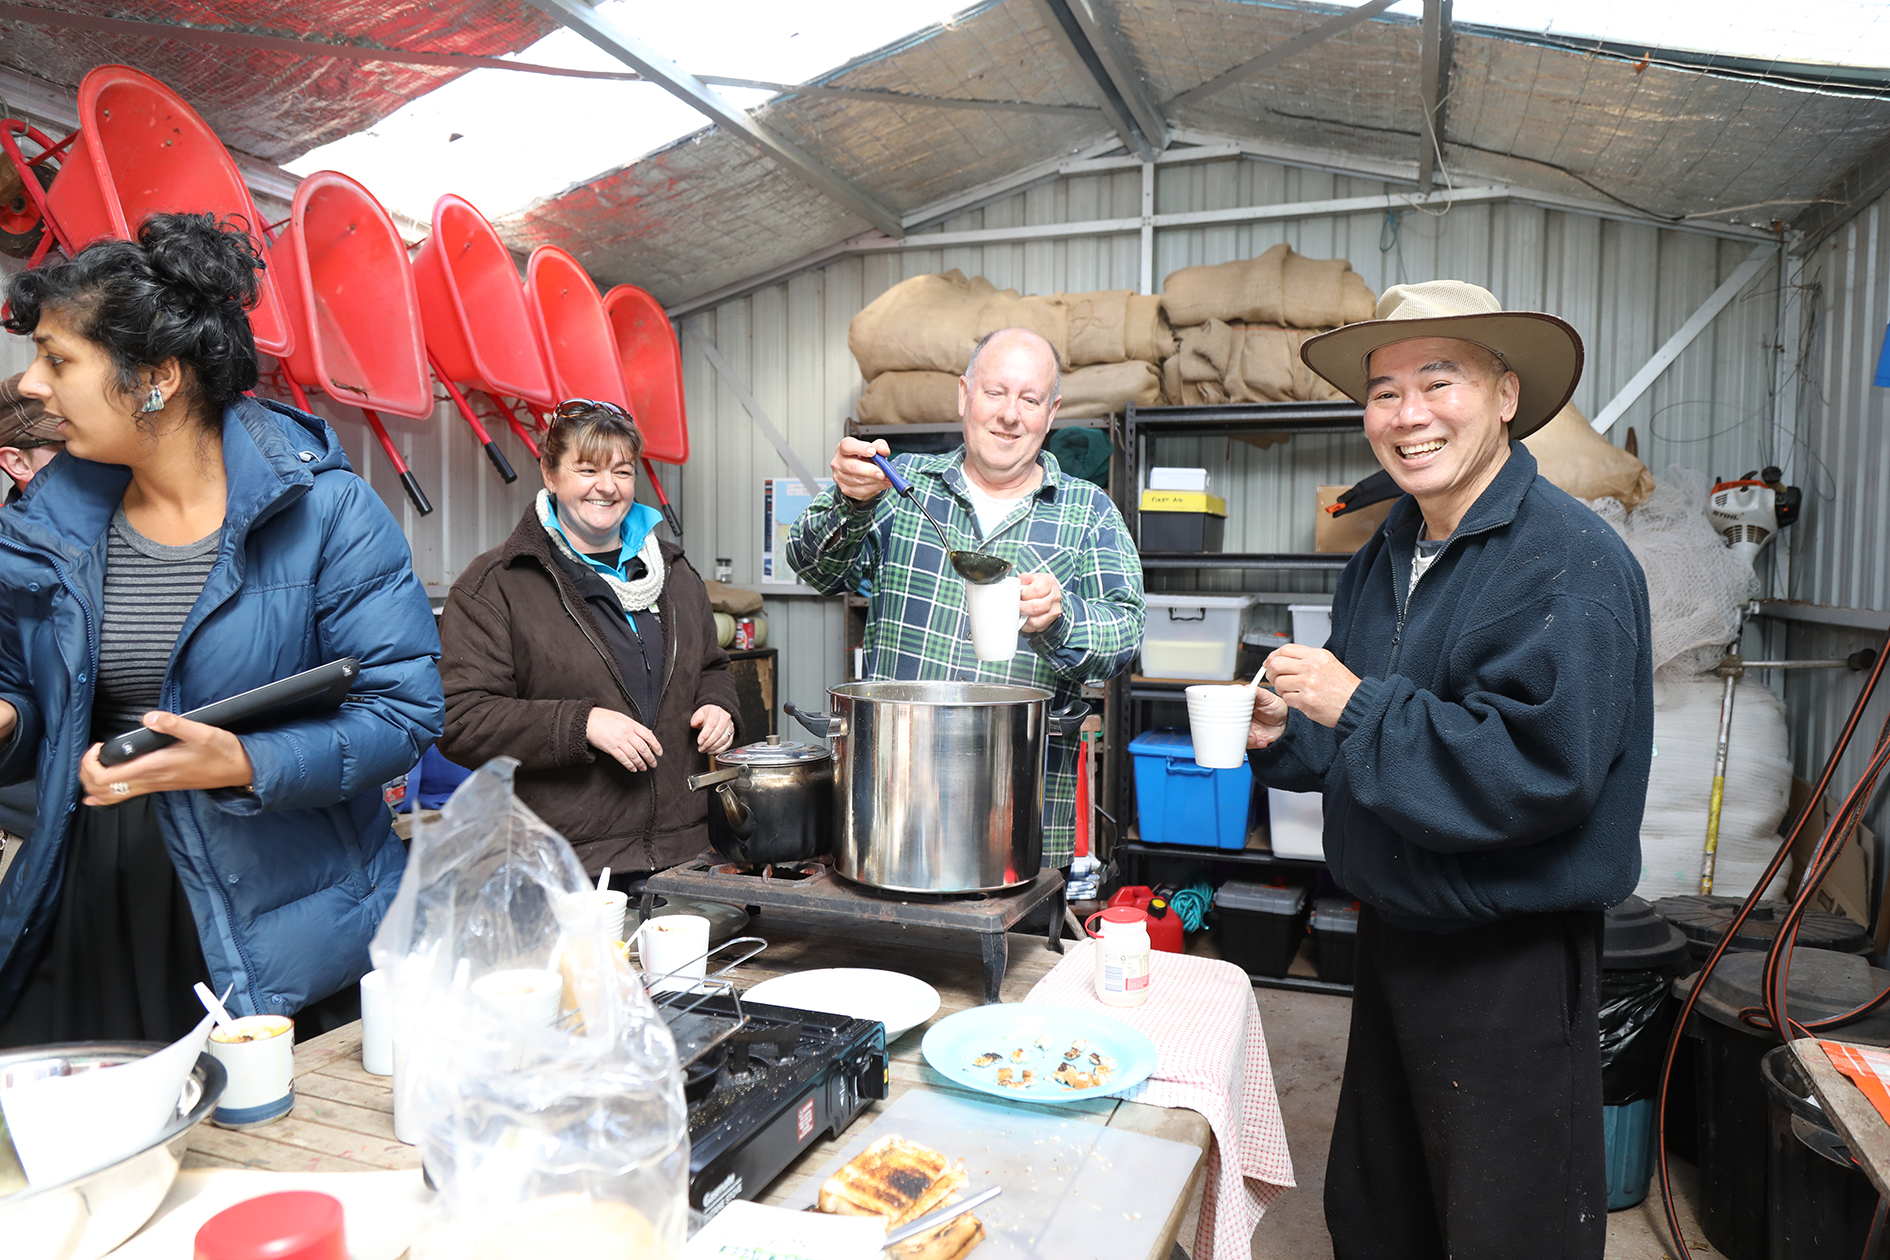 From left, Tanya King, David Hudson and Howard Hor sampling soup at the community garden.  Photo by Mike Moores